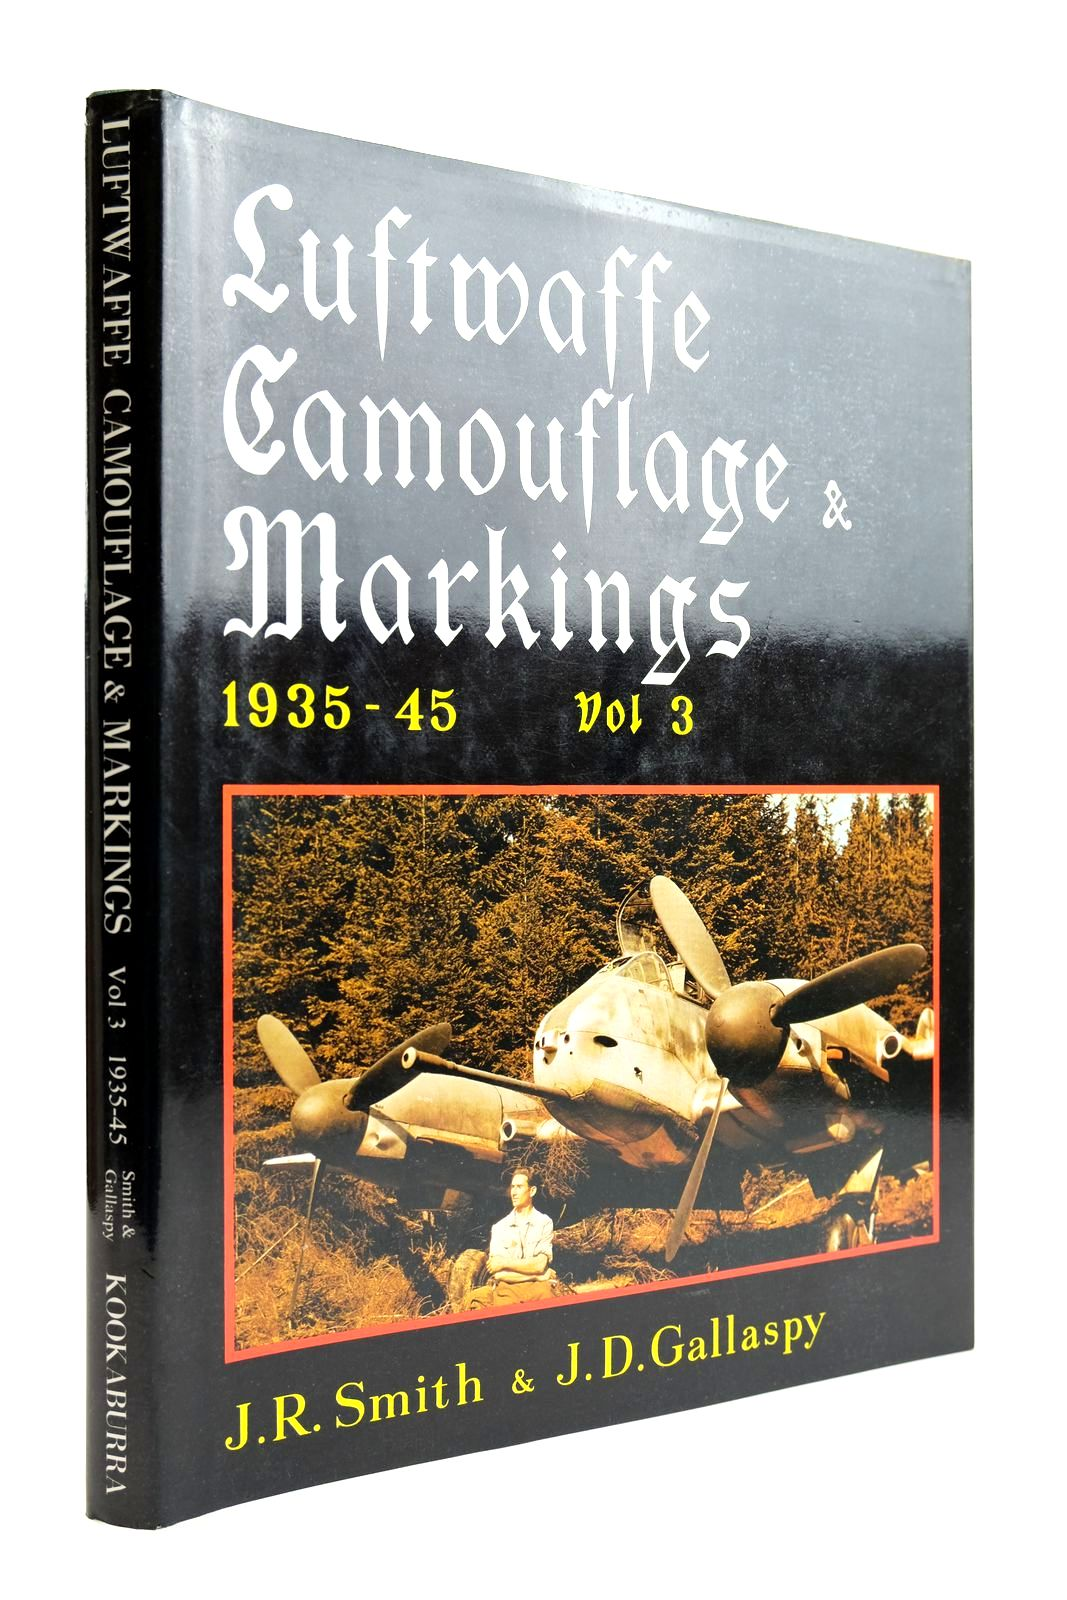 Photo of LUFTWAFFE CAMOUFLAGE & MARKINGS 1935-45 VOL 3 written by Smith, J.R. Gallaspy, J.D. illustrated by Pentland, Geoffrey Creek, E.J. published by Kookaburra Technical Publications (STOCK CODE: 2132115)  for sale by Stella & Rose's Books